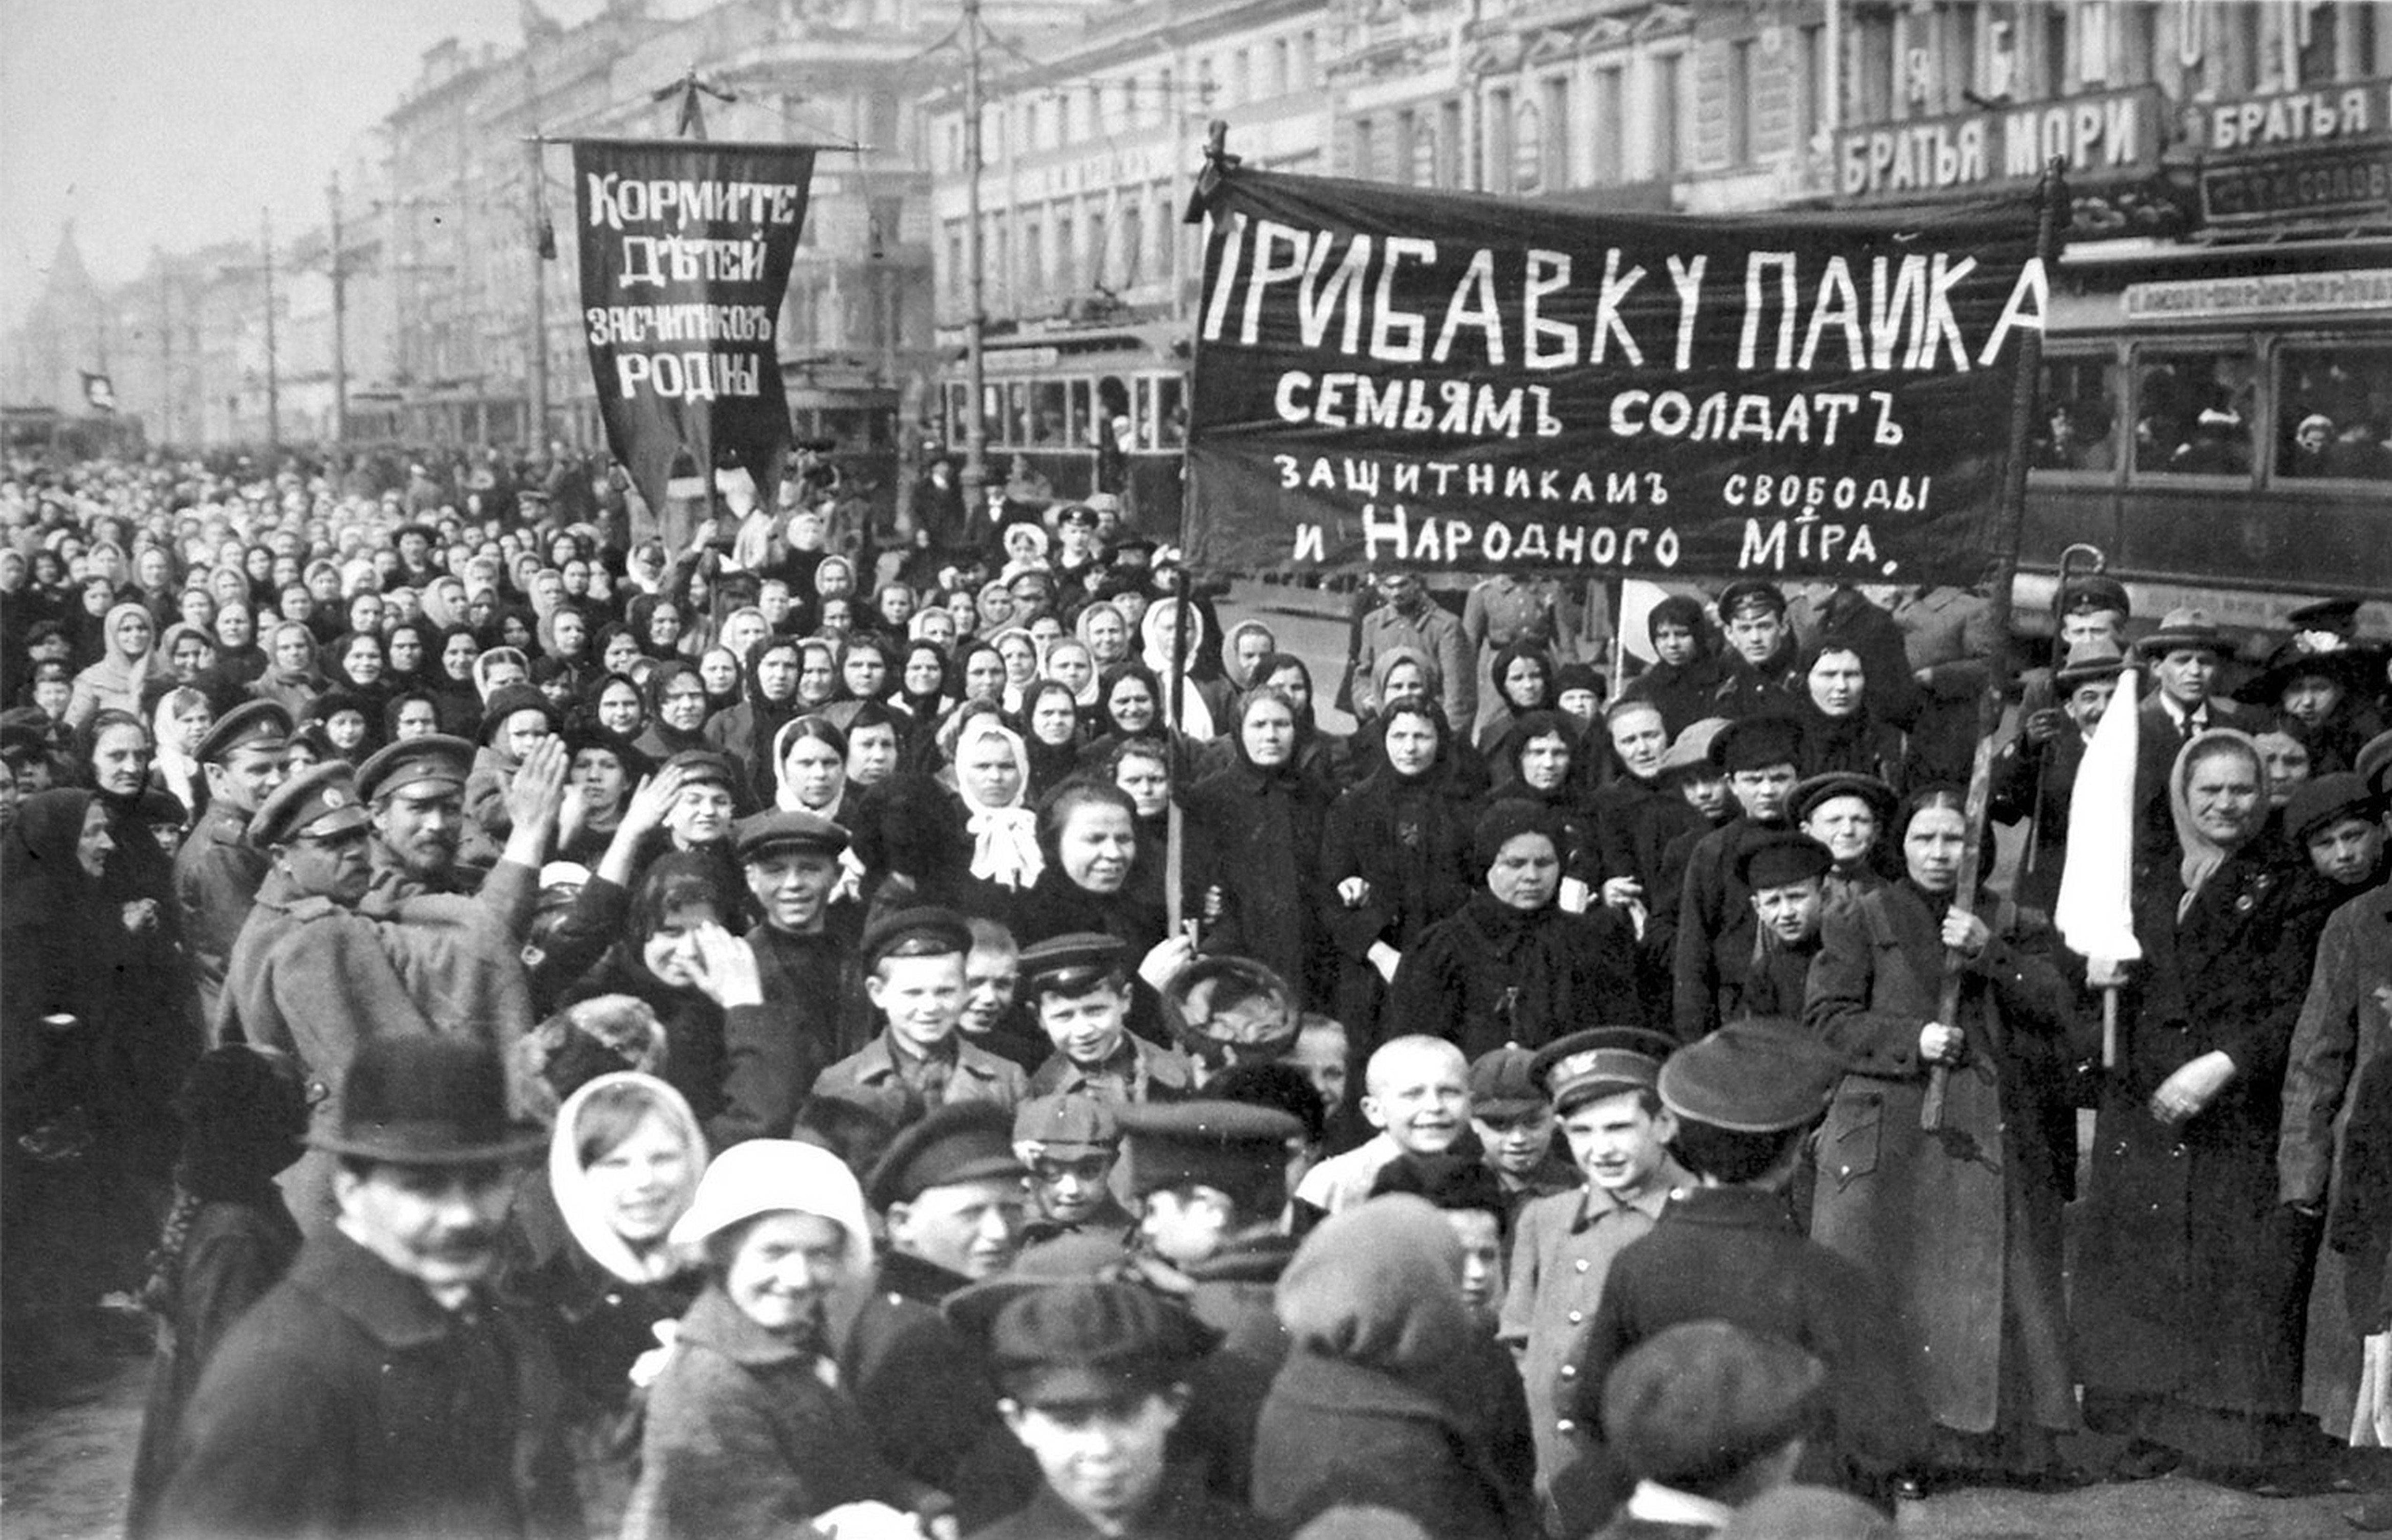 Striking Putilov workers on the first day of the February Revolution, St Petersburg, Russia, 1917. Artist: Anon